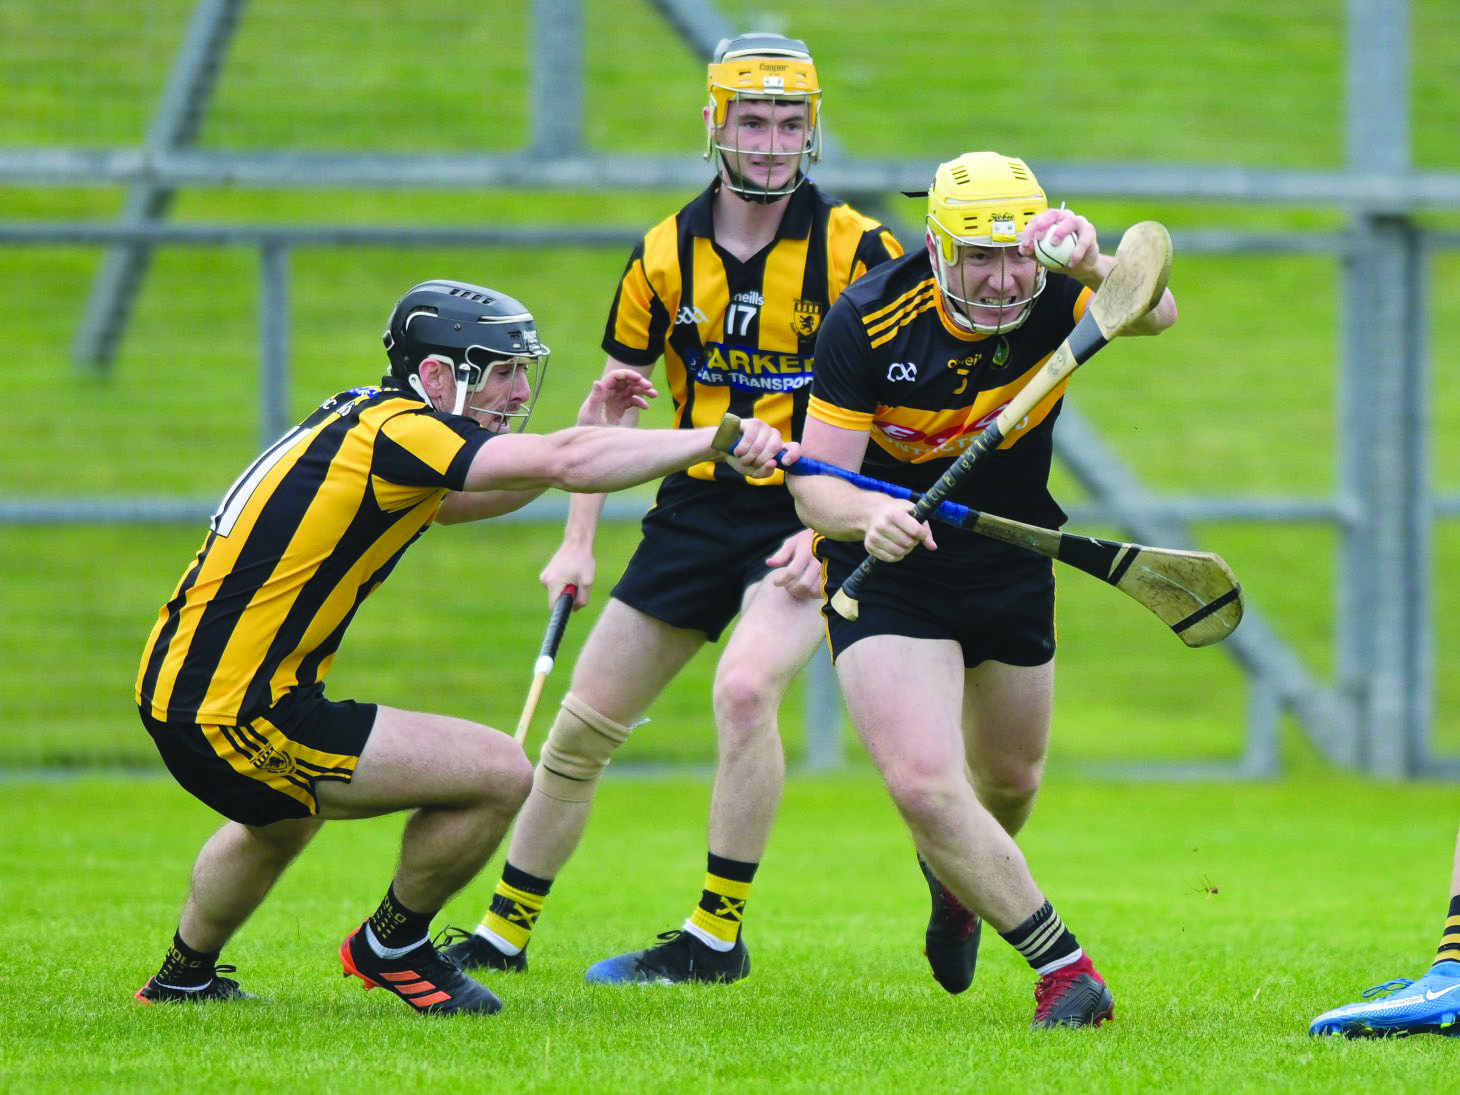 Naomh Éanna made history on Sunday in Ballycastle when recording the club's first win in the Antrim Senior Hurling Championship, but the challenge is greater again in Sunday's quarter-final against Cushendall